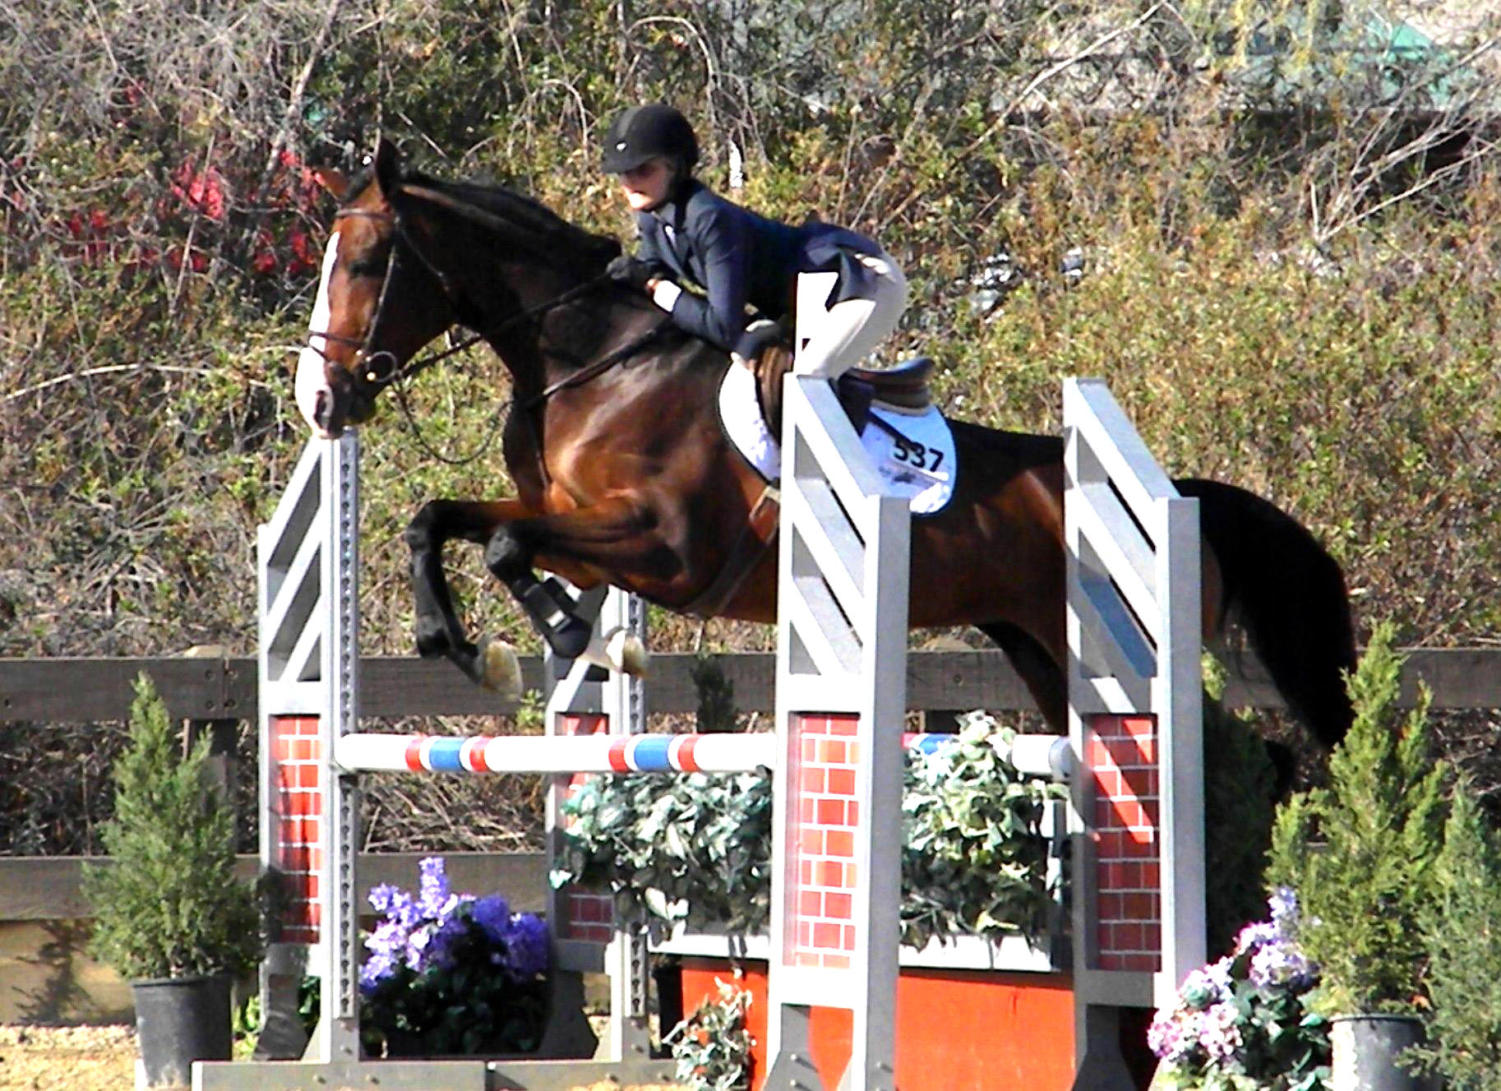 Virginia Smith competes in an International Equestrian League competition in Orange County.